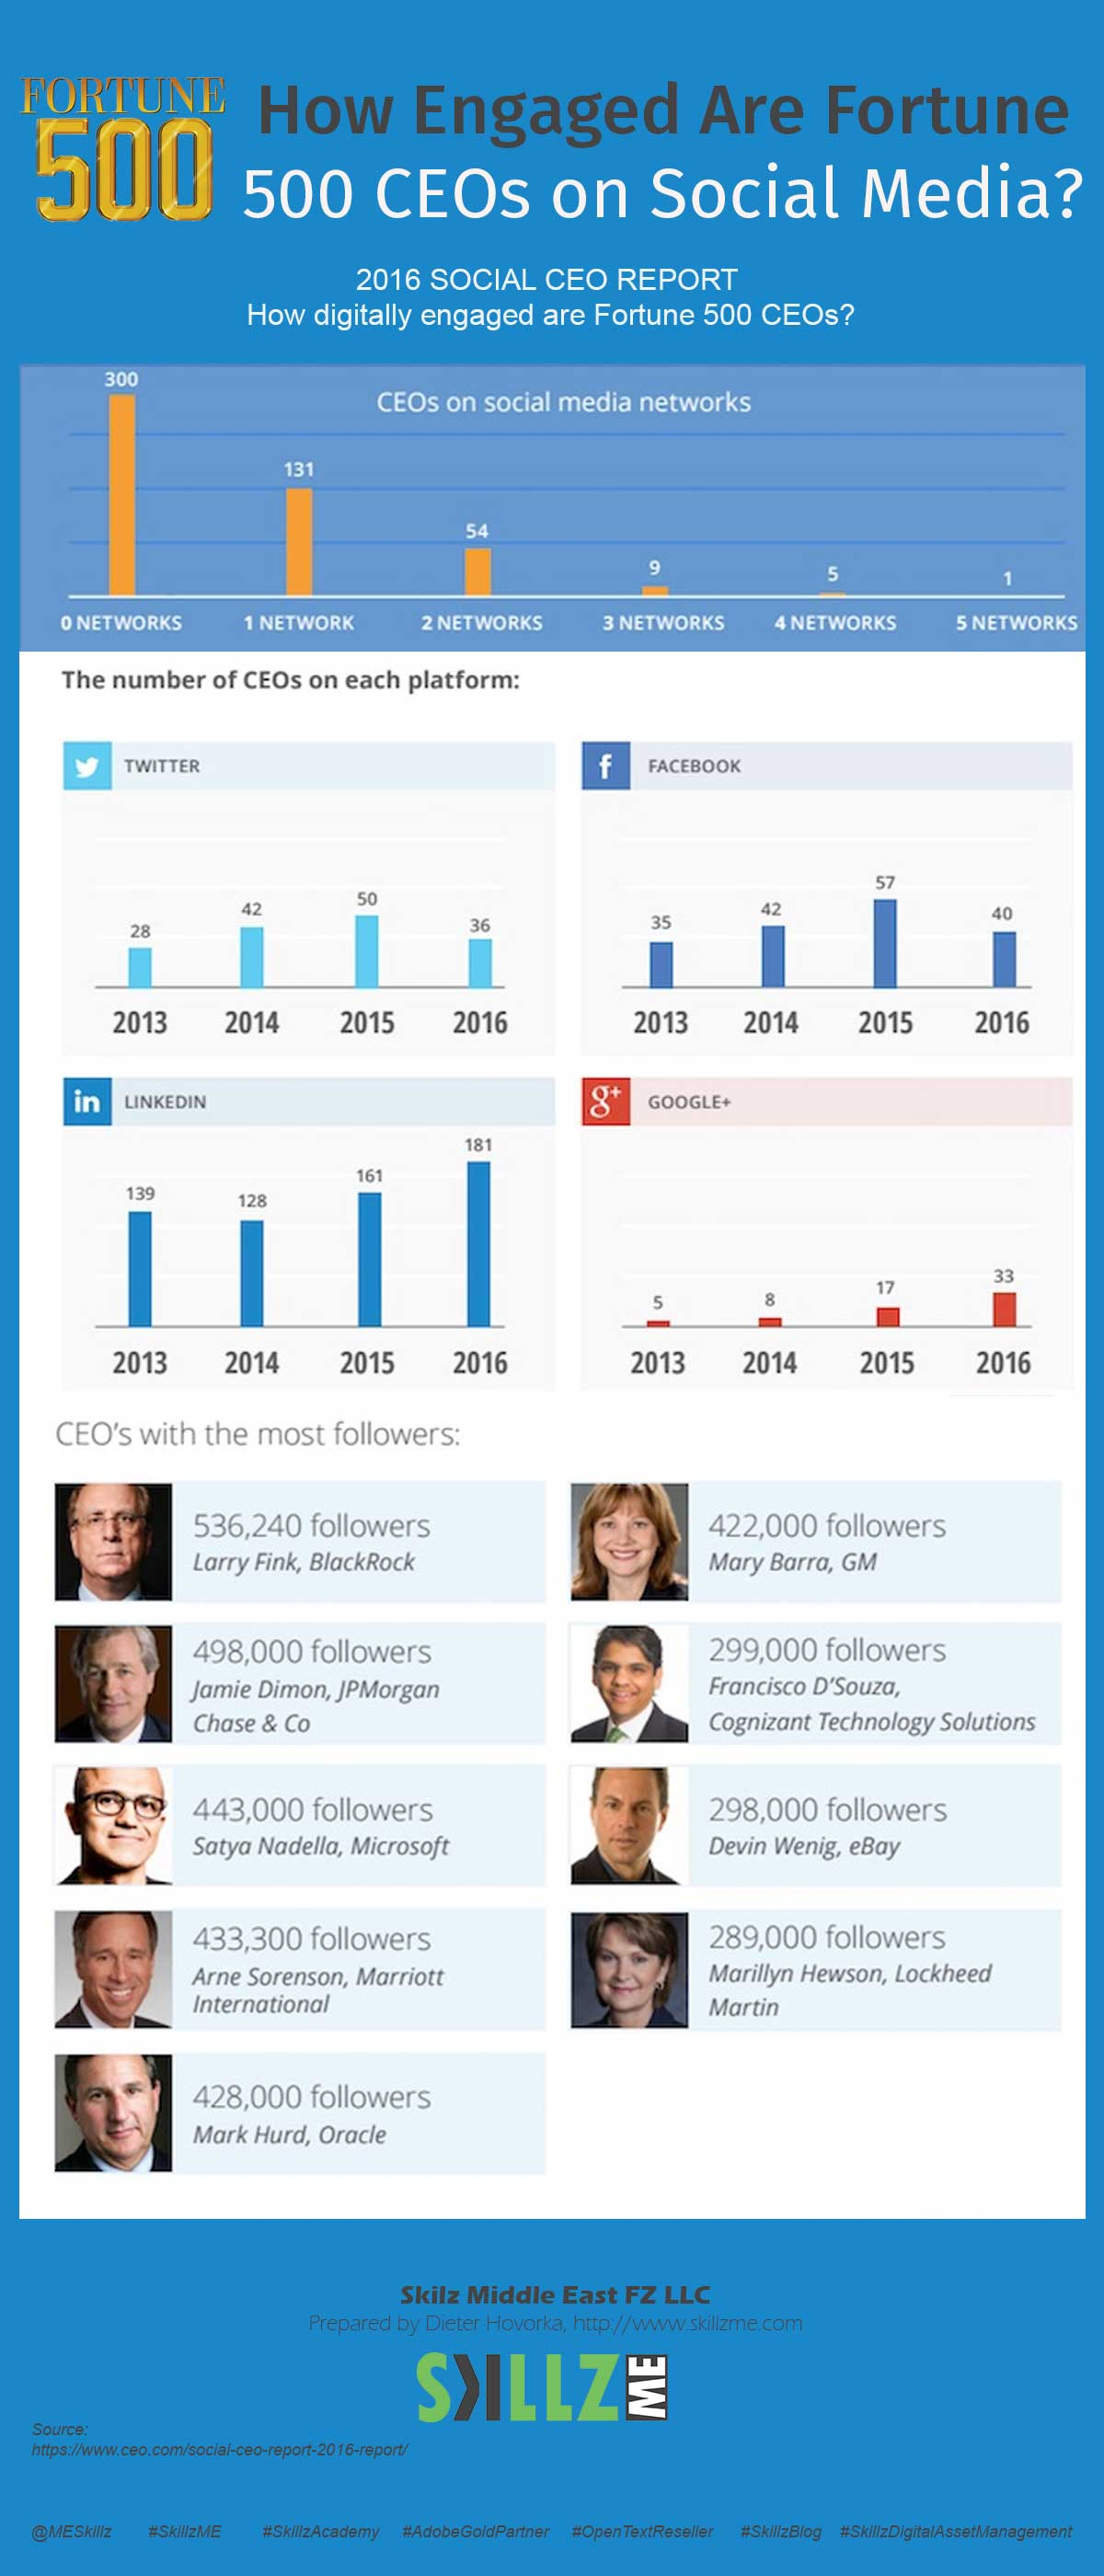 How Engaged Are Fortune 500 CEOs on Social Media